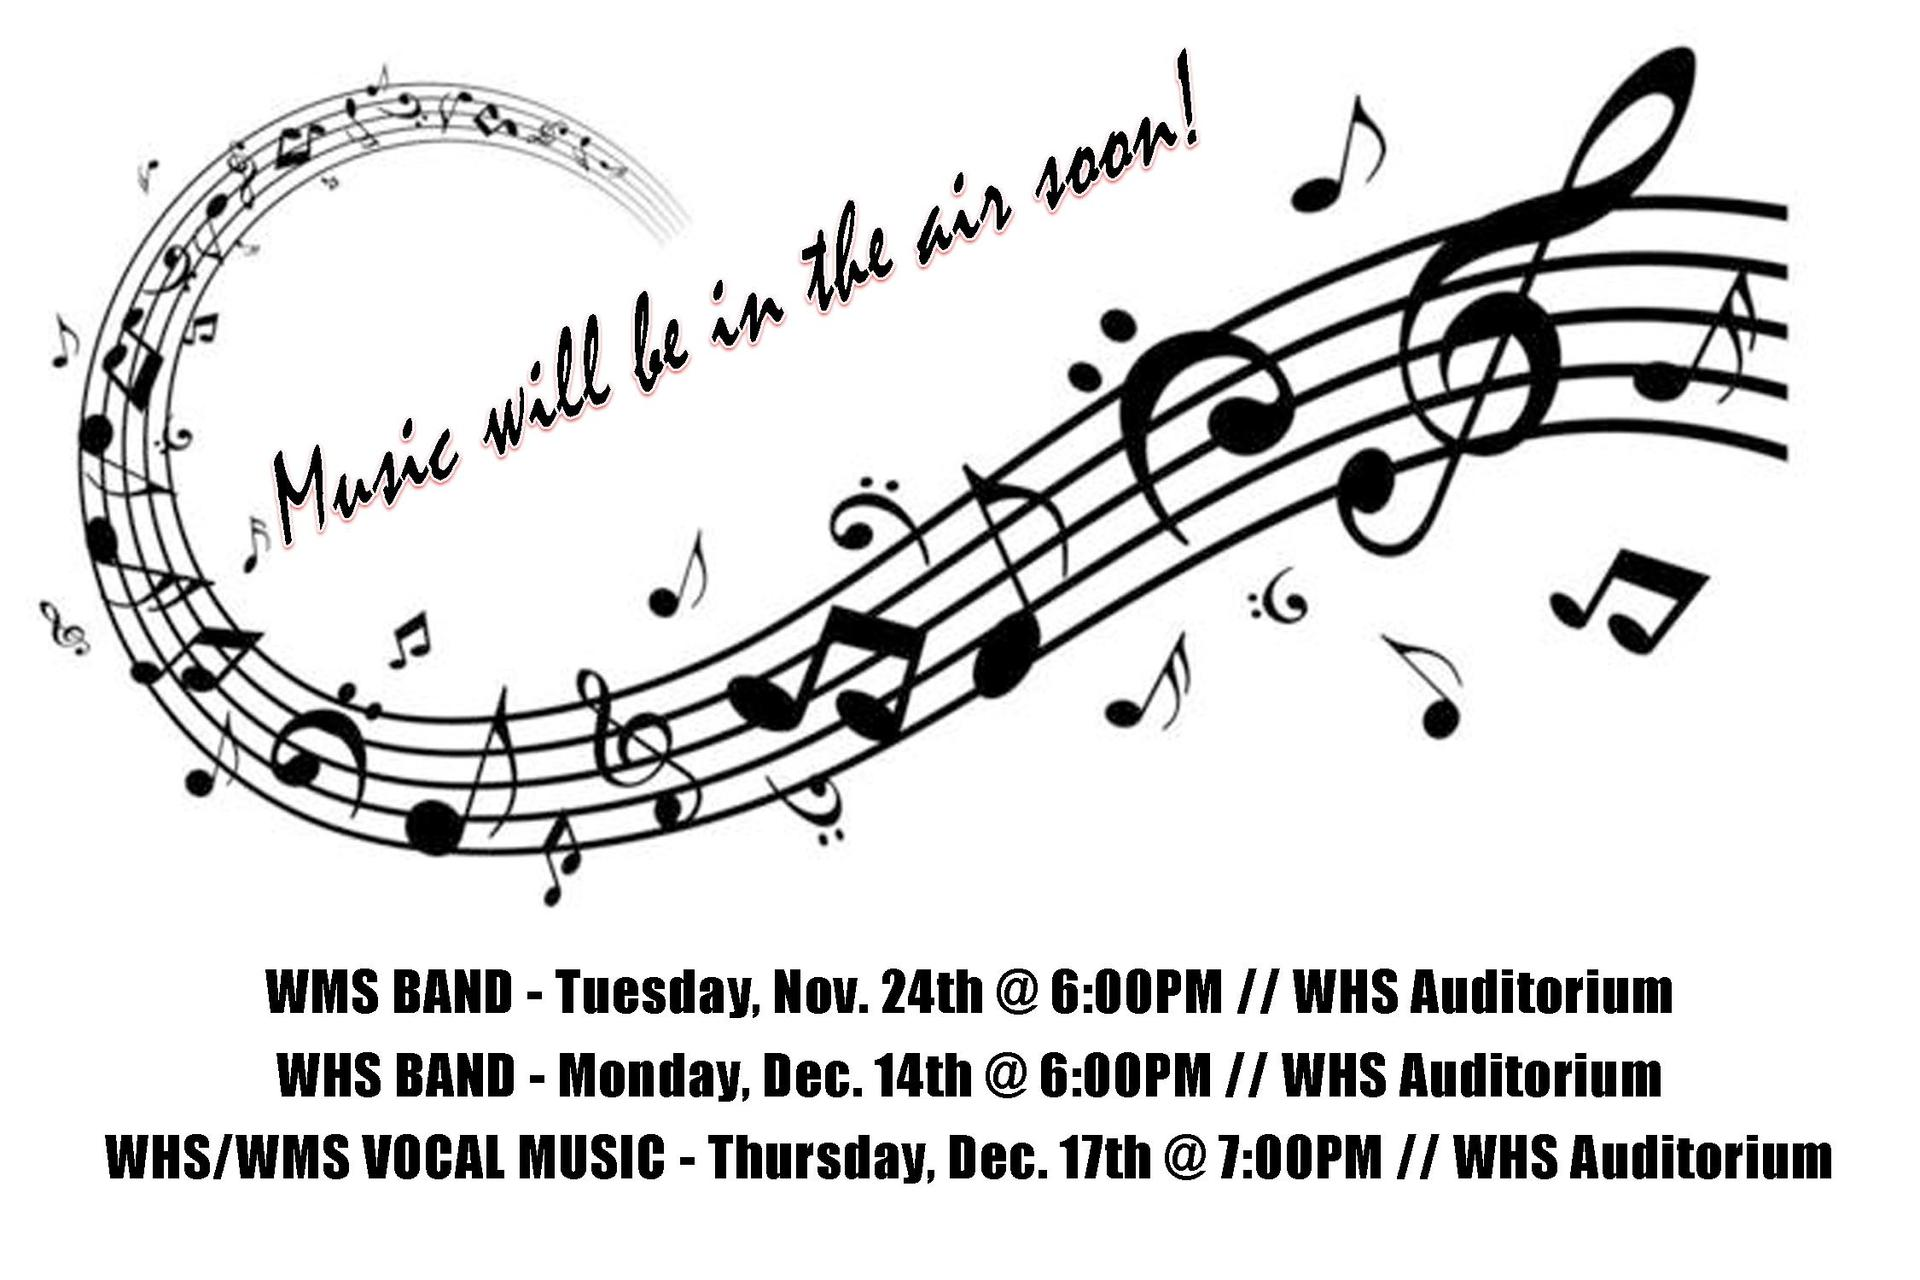 Upcoming Music Concerts @ WHS